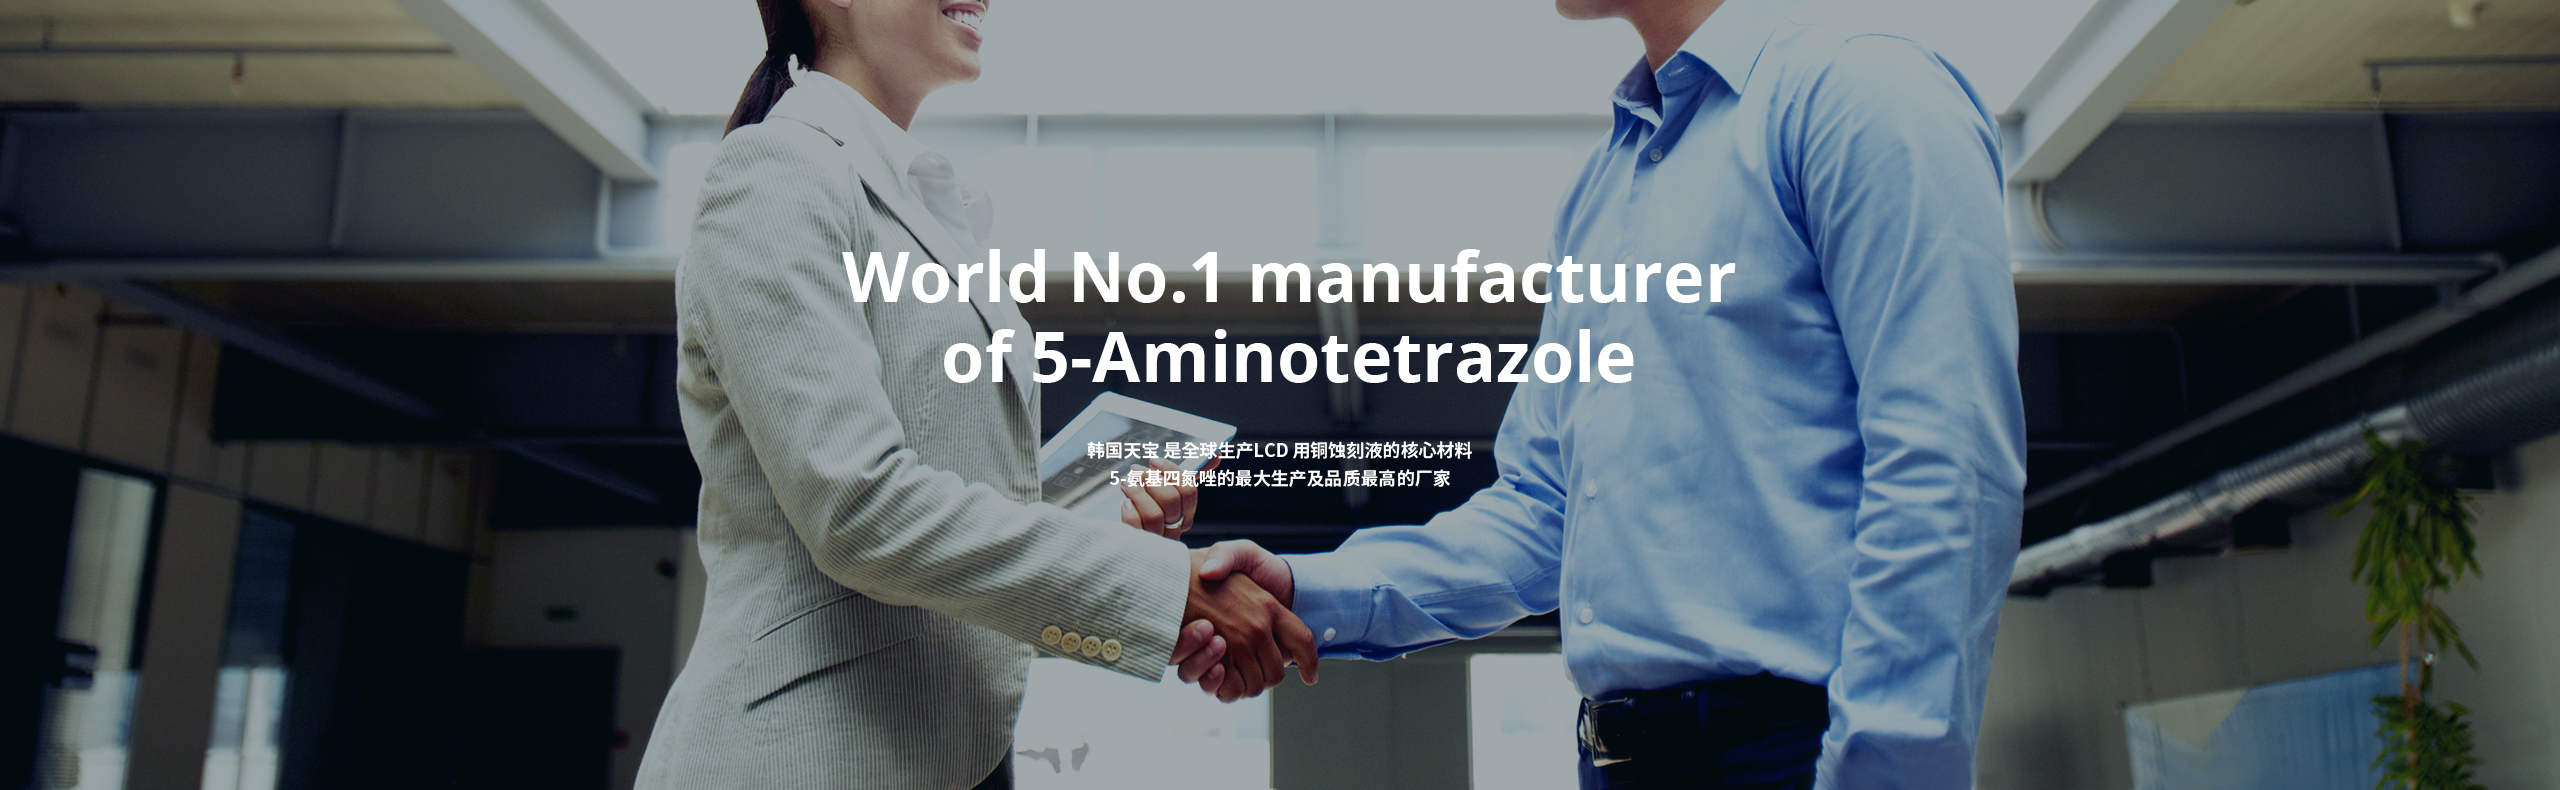 World No.1 manufacturer of 5-Aminotetrazole